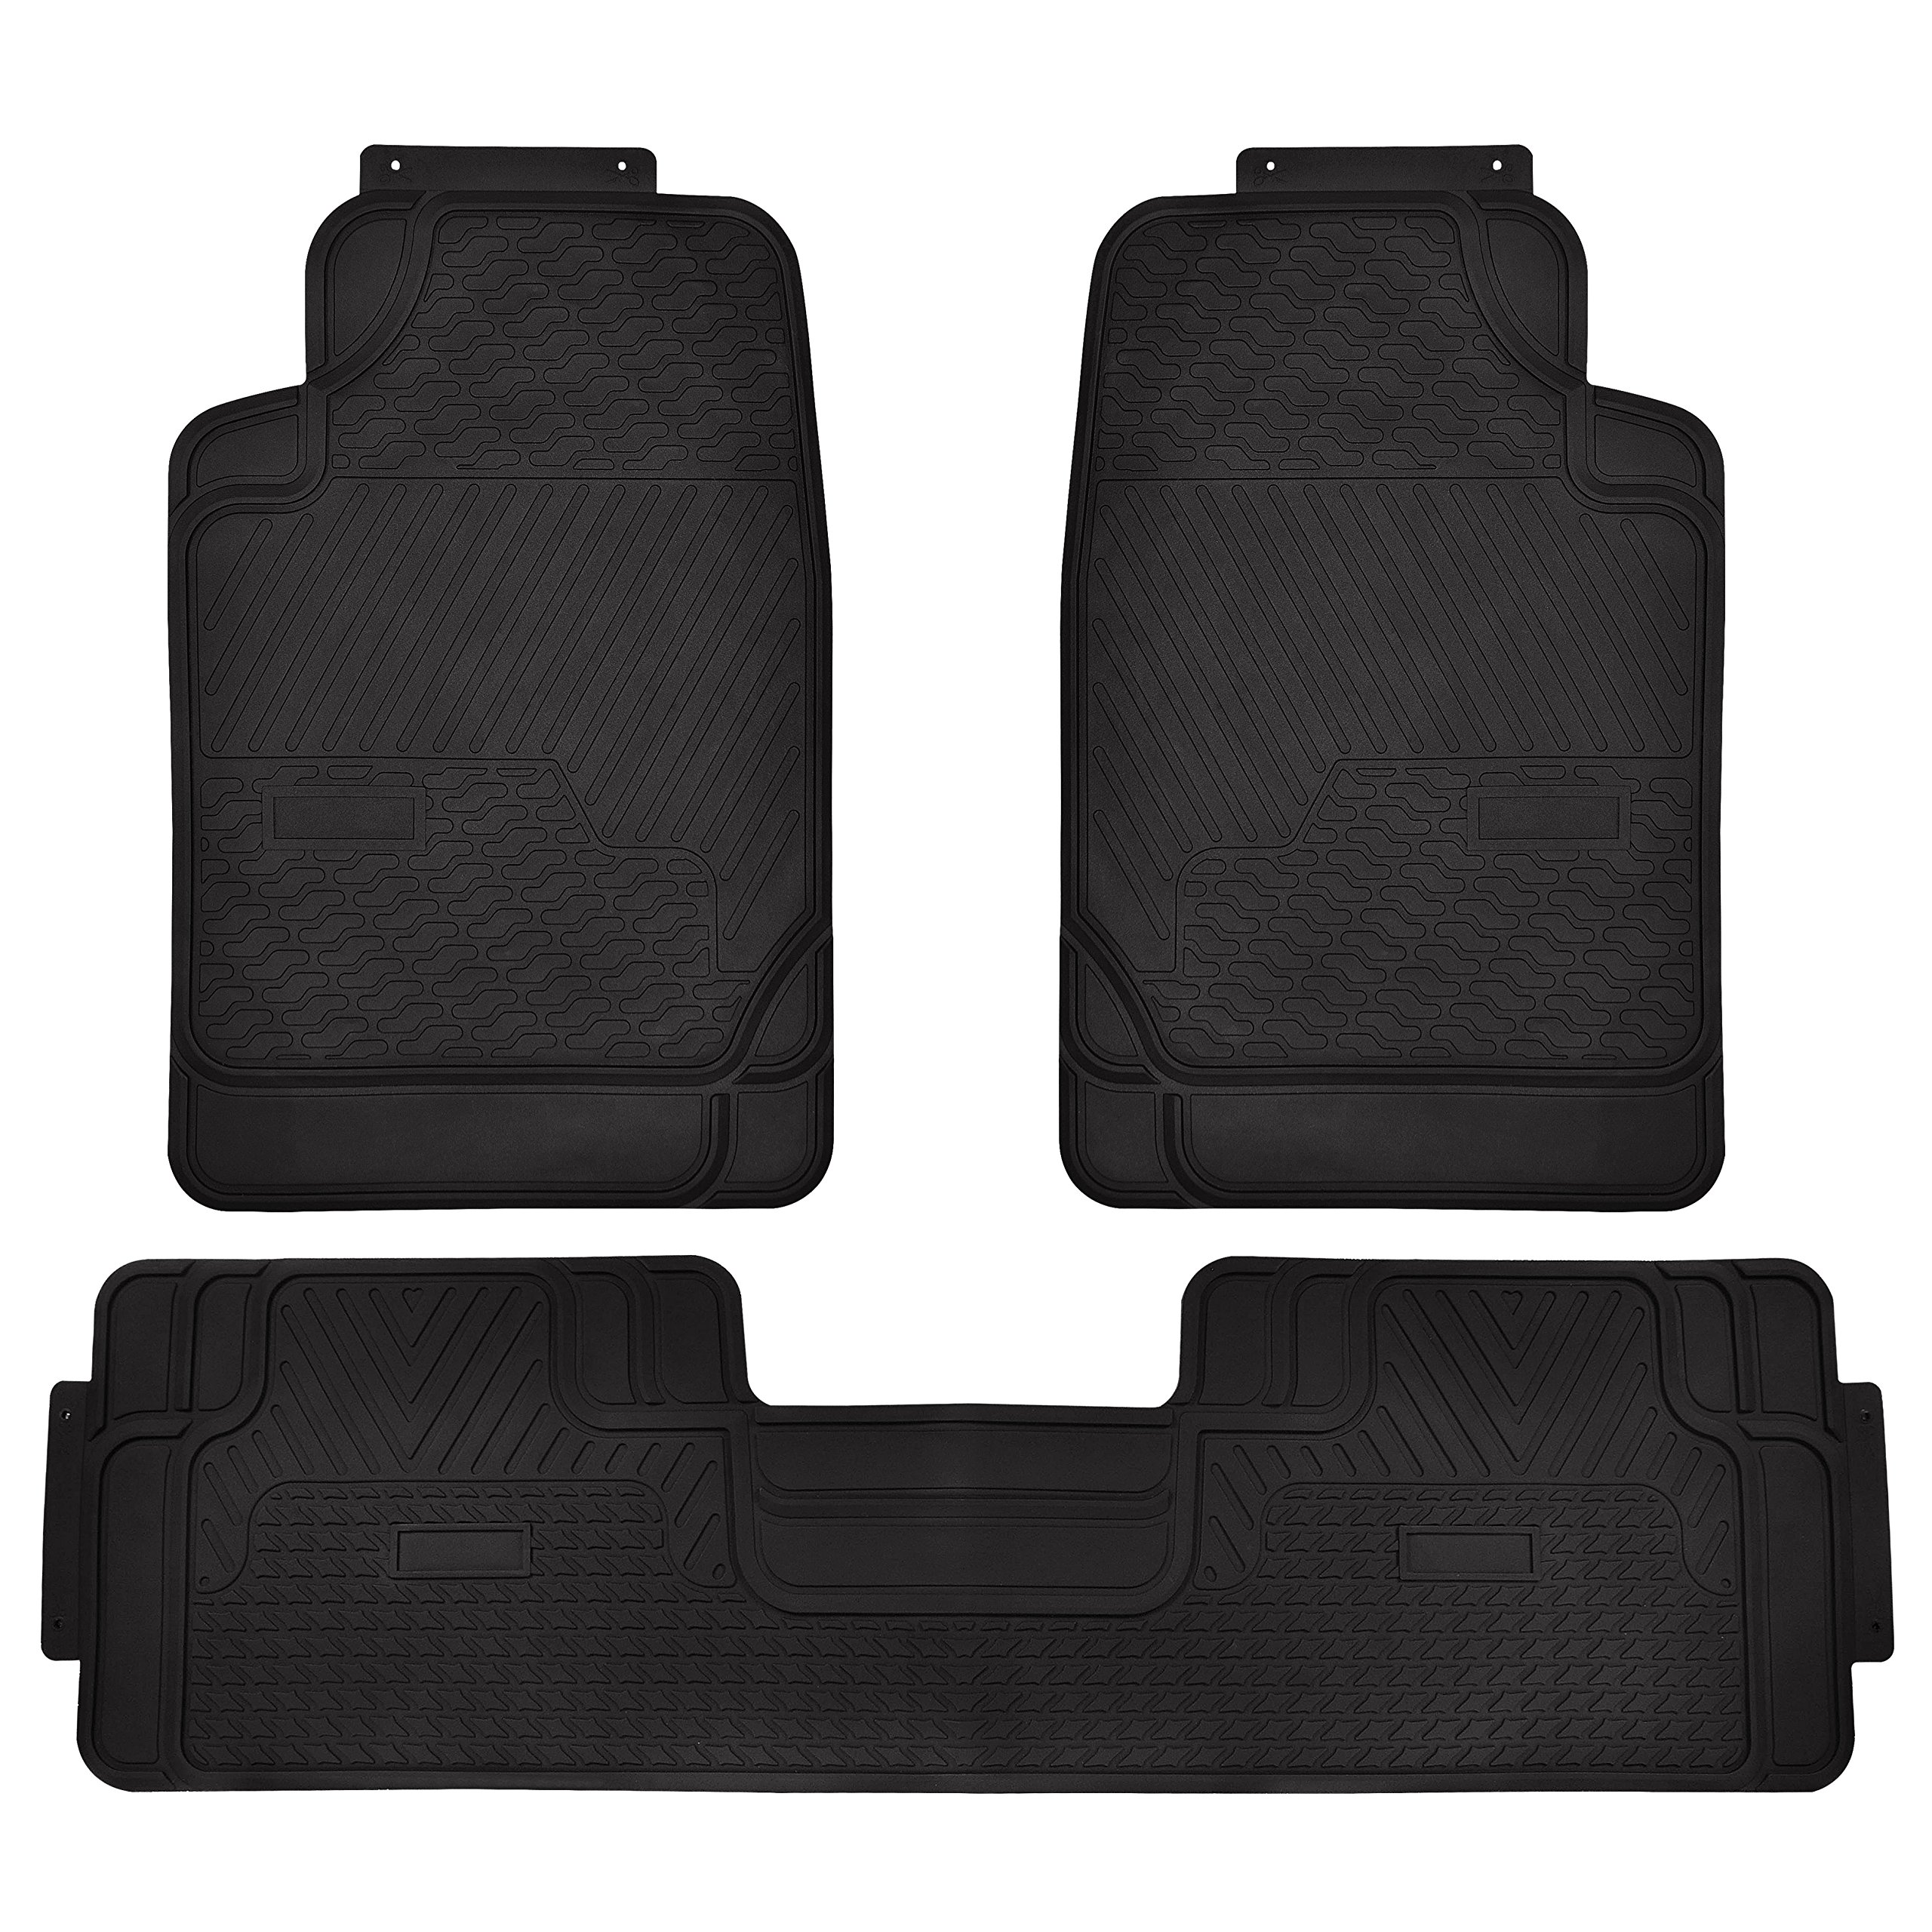 Floor Mats 3PC Rubber Heavy Duty Auto Floor Mats Front and Rear For Car SUV Truck & Van – Black